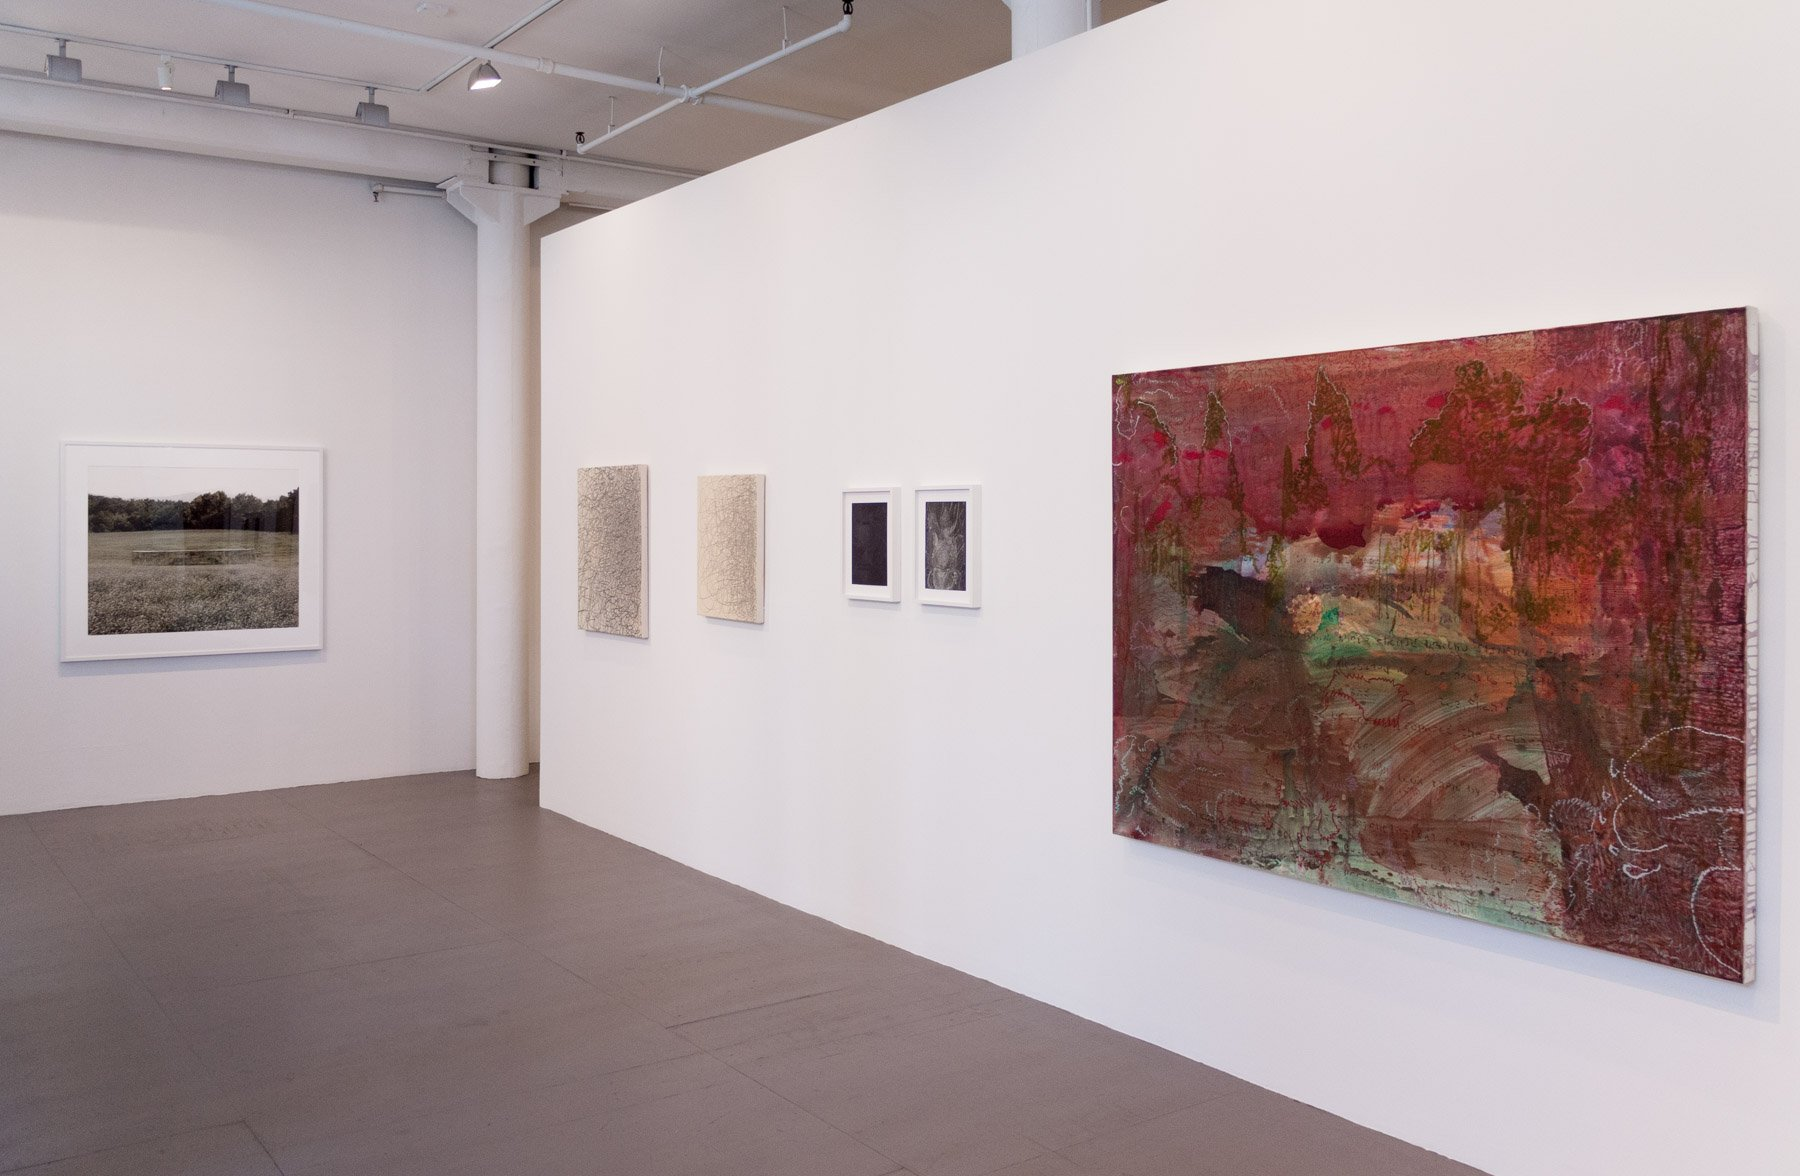 Installation view of New Works at Art Projects International, New York, 2019.